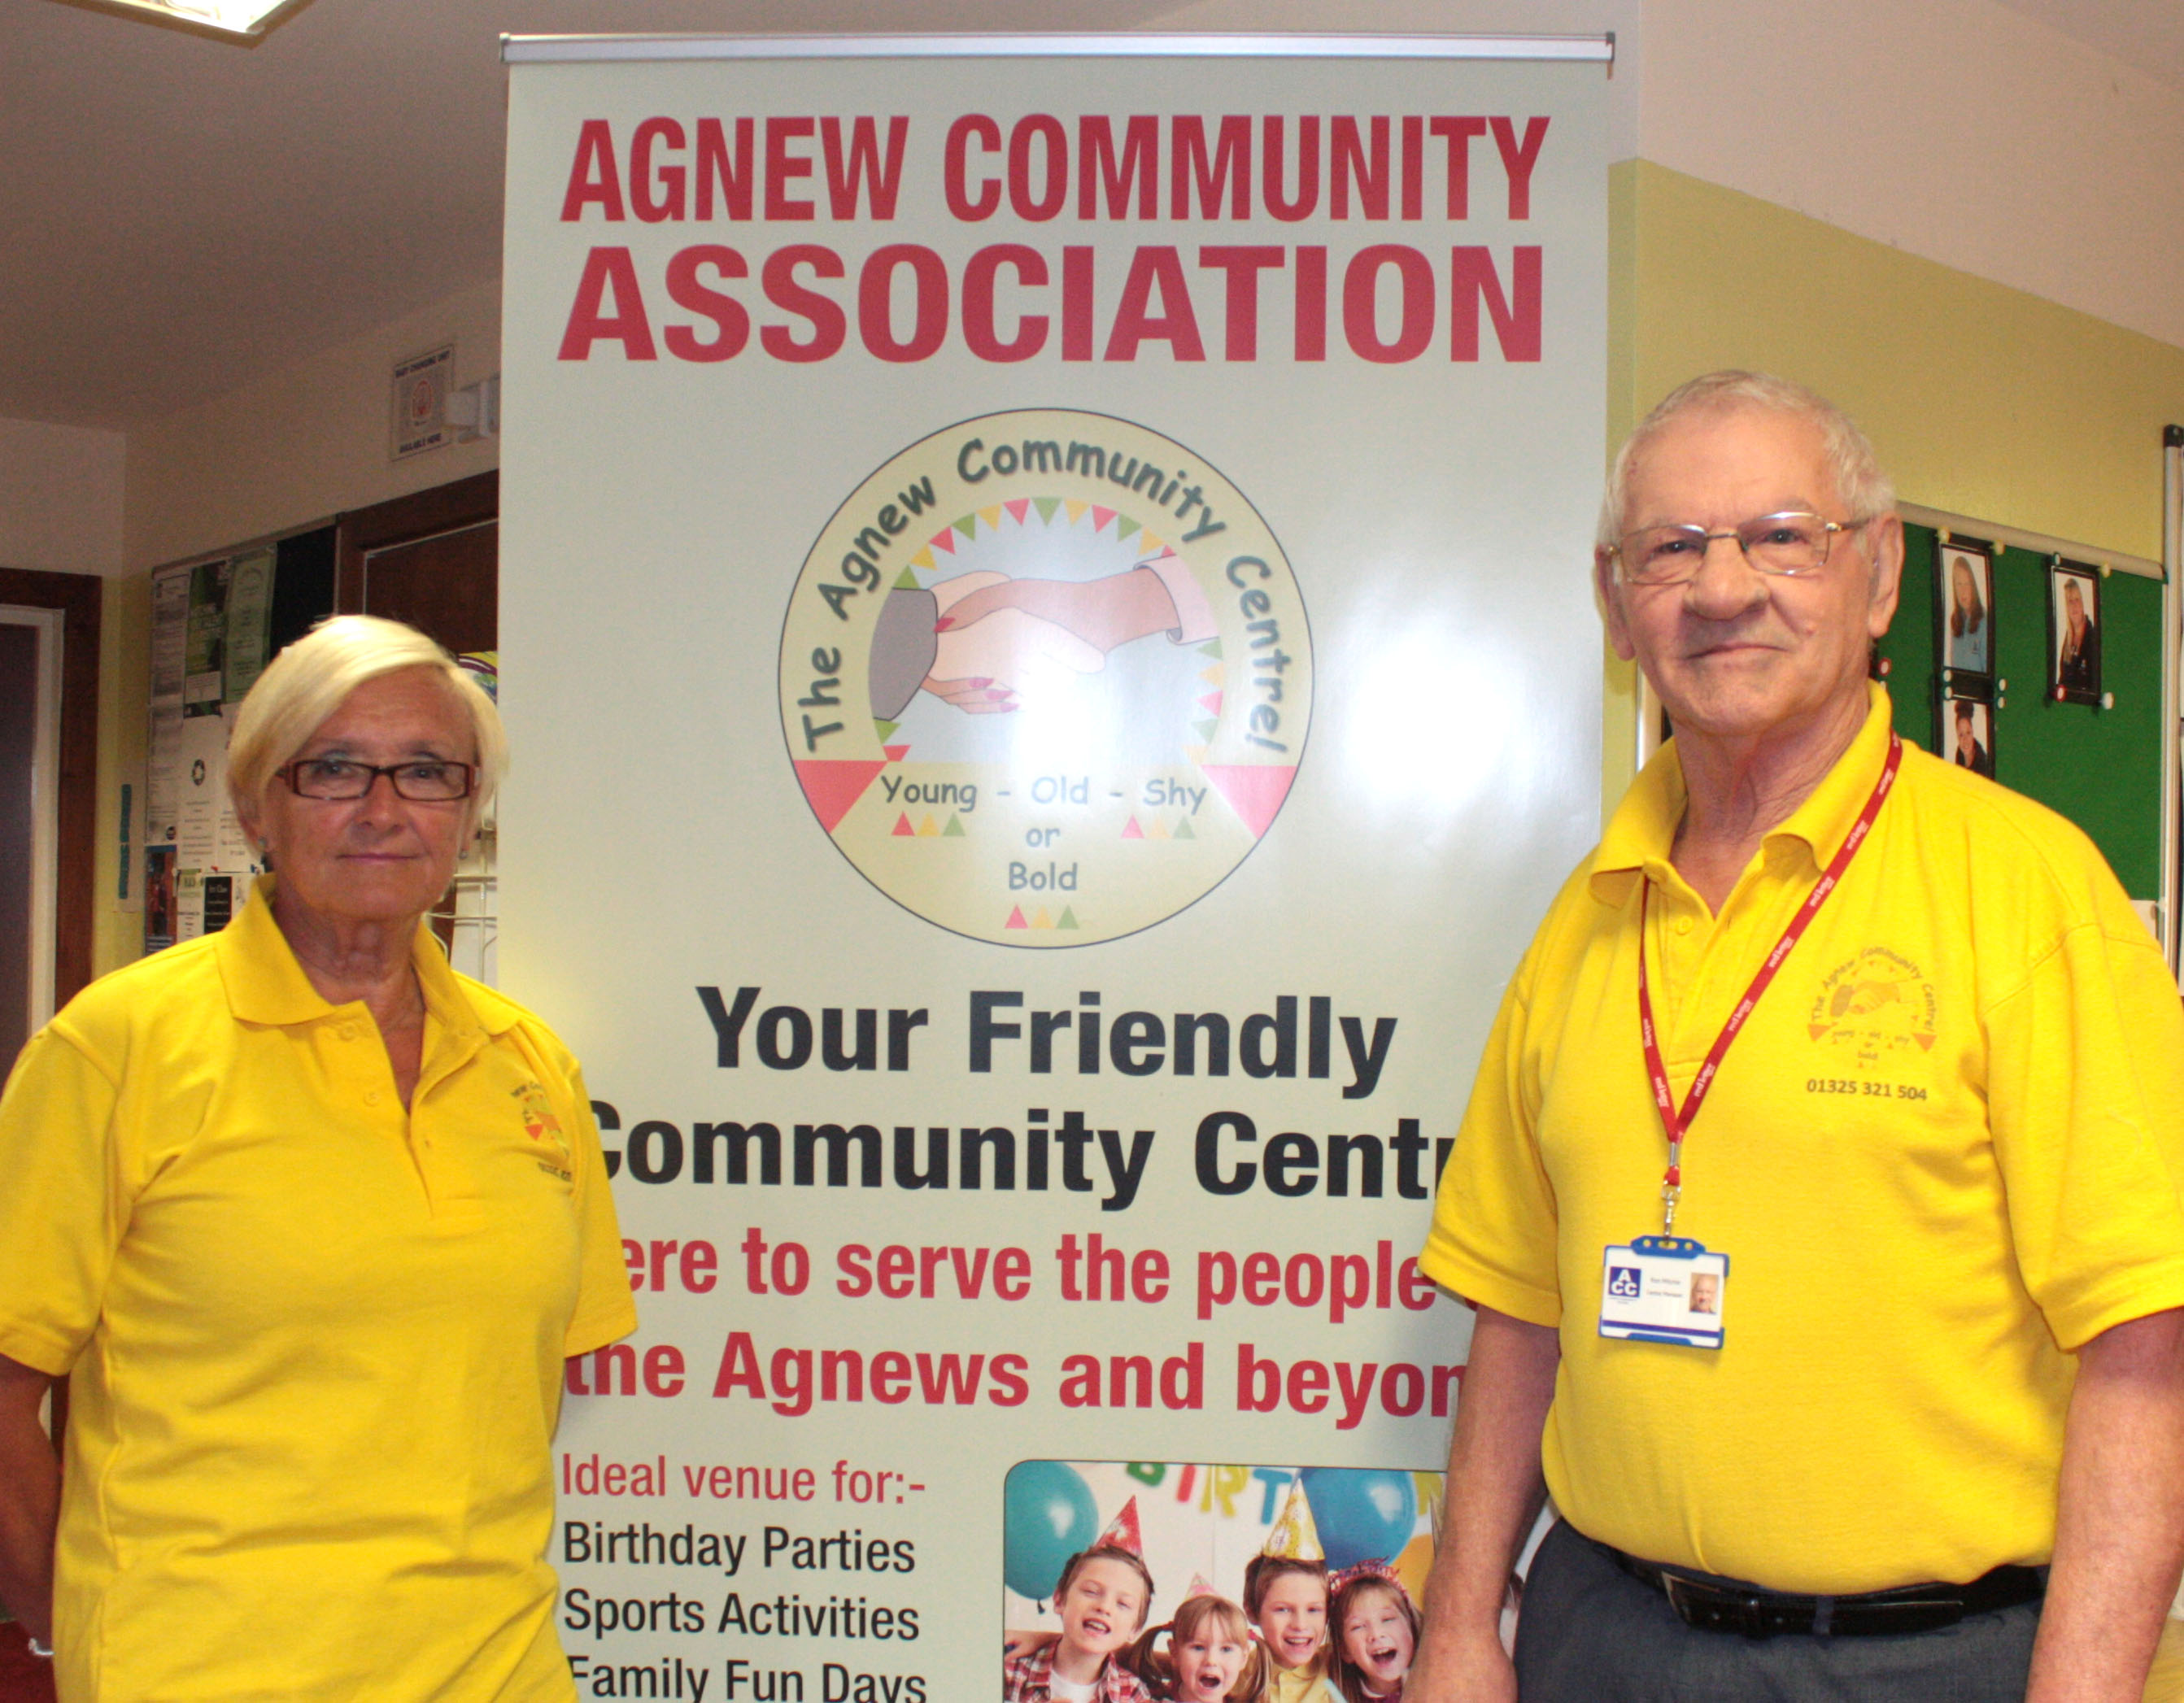 Exciting Prospects for Agnew Community